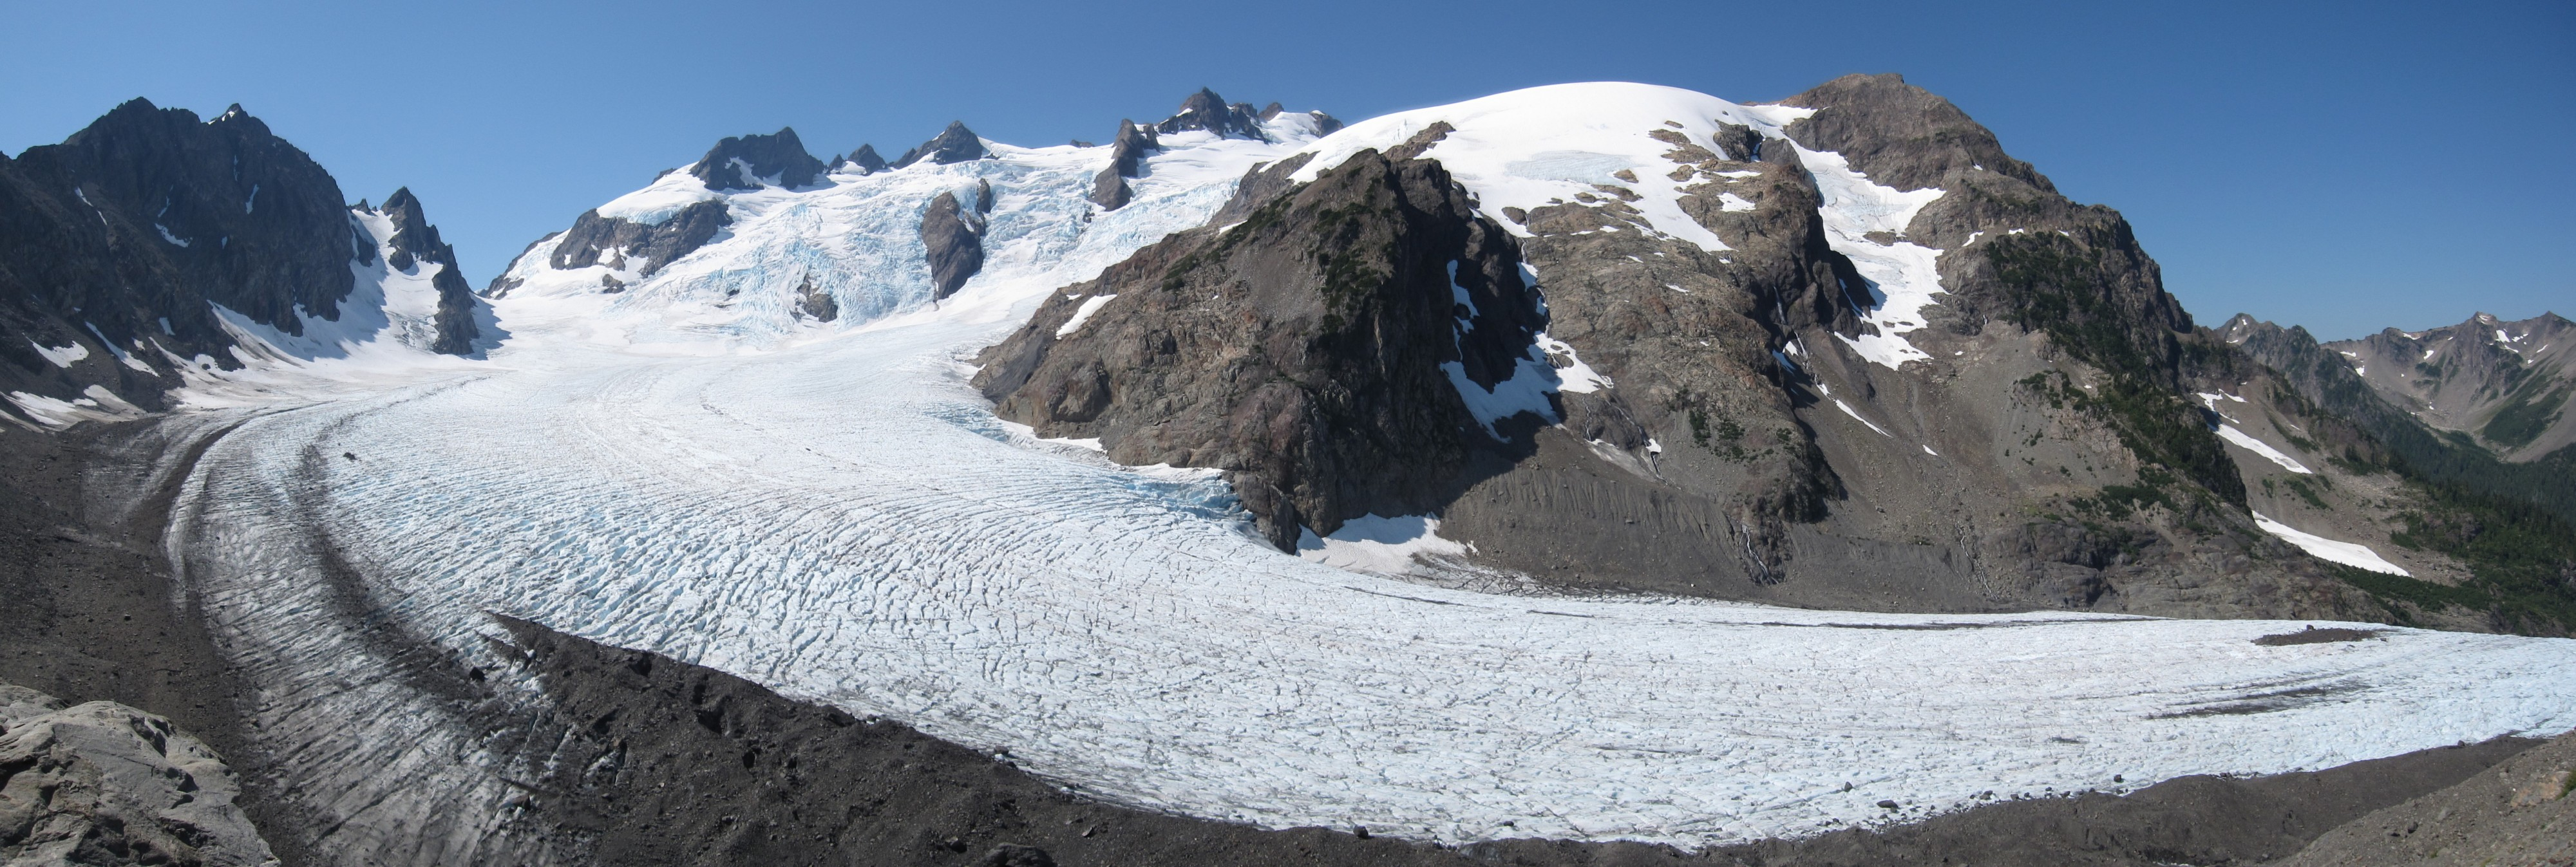 Mount Olympus Blue Glacier from Lateral Moraine Panorama